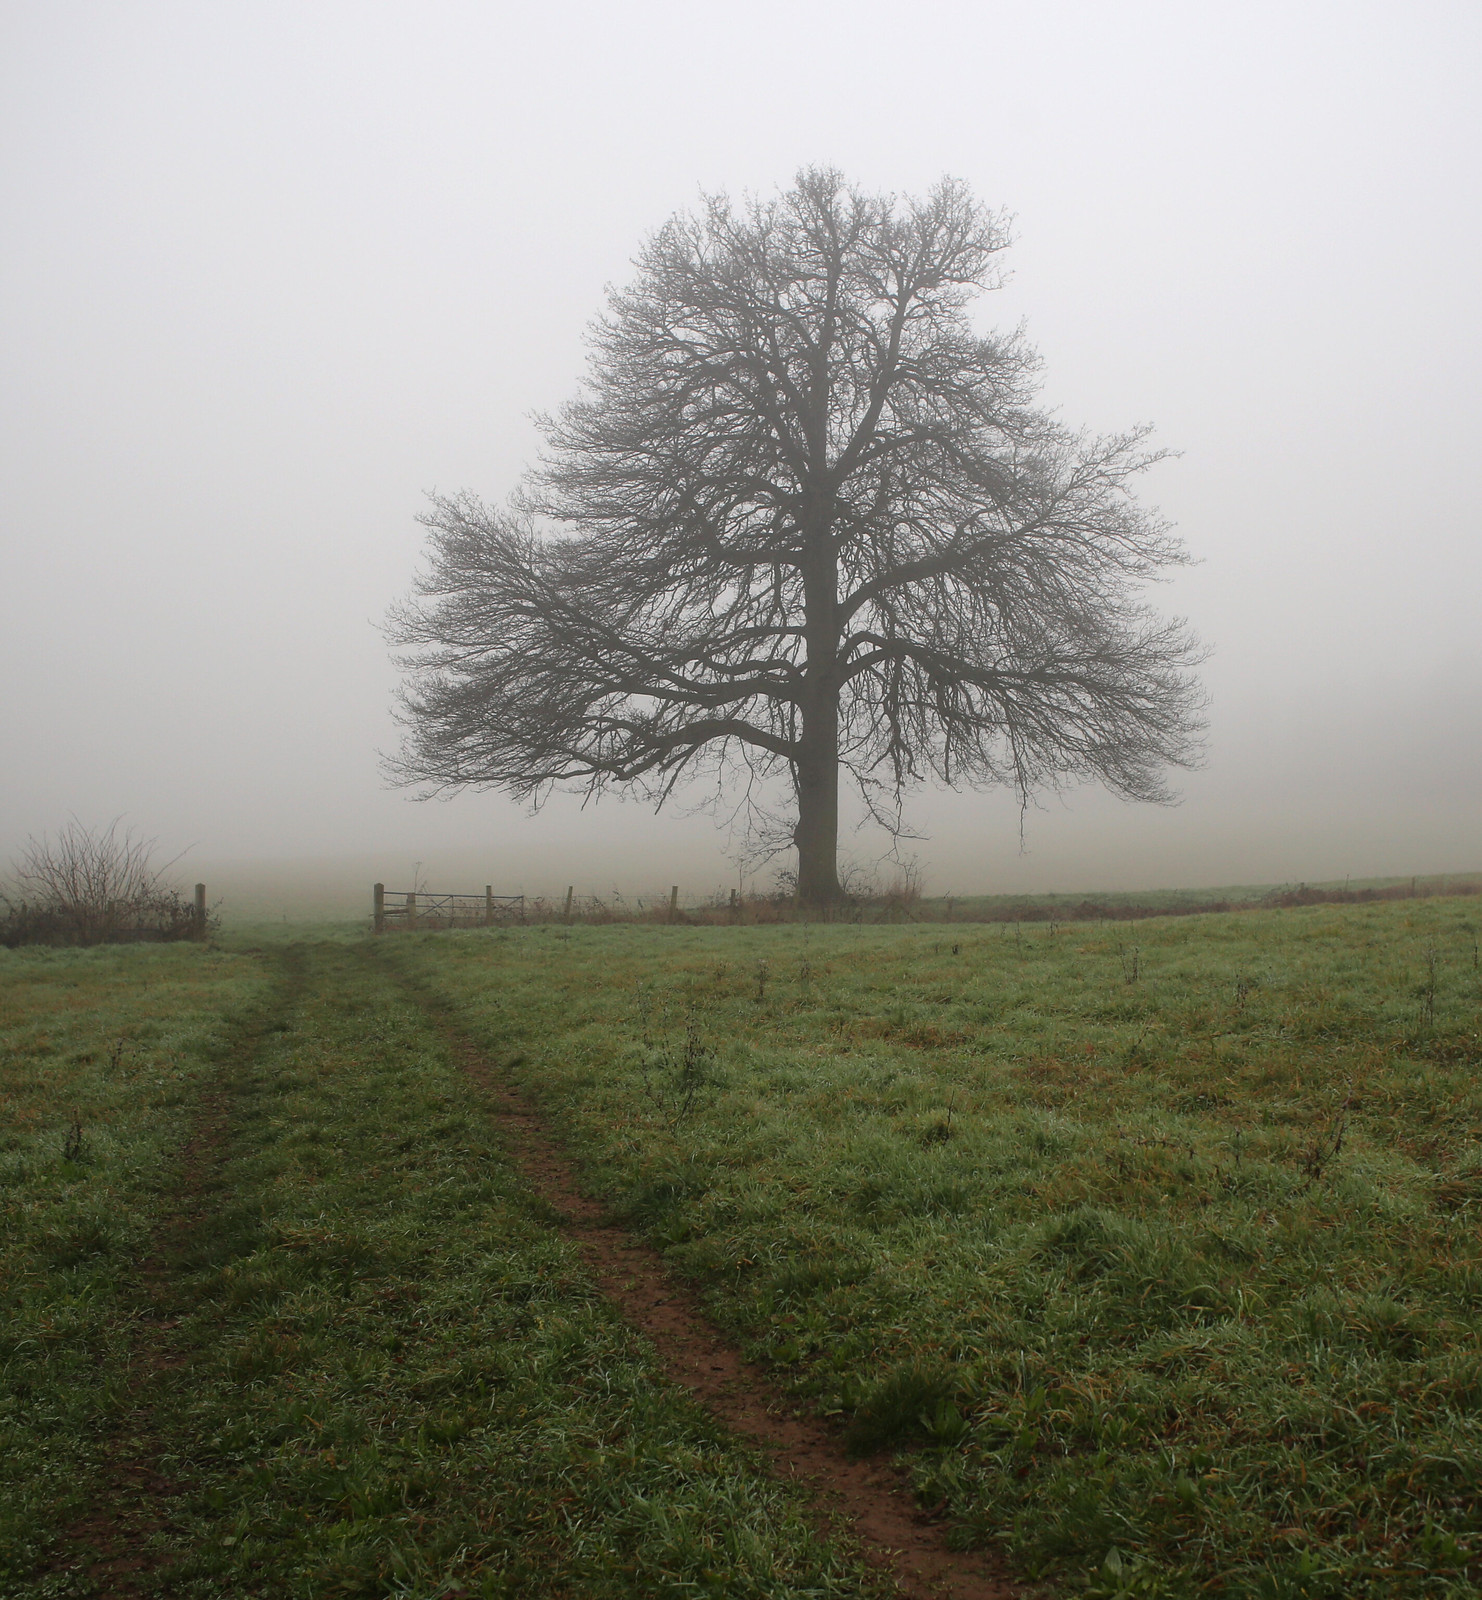 Winter A tree in the mist near Loseley Park in Surrey